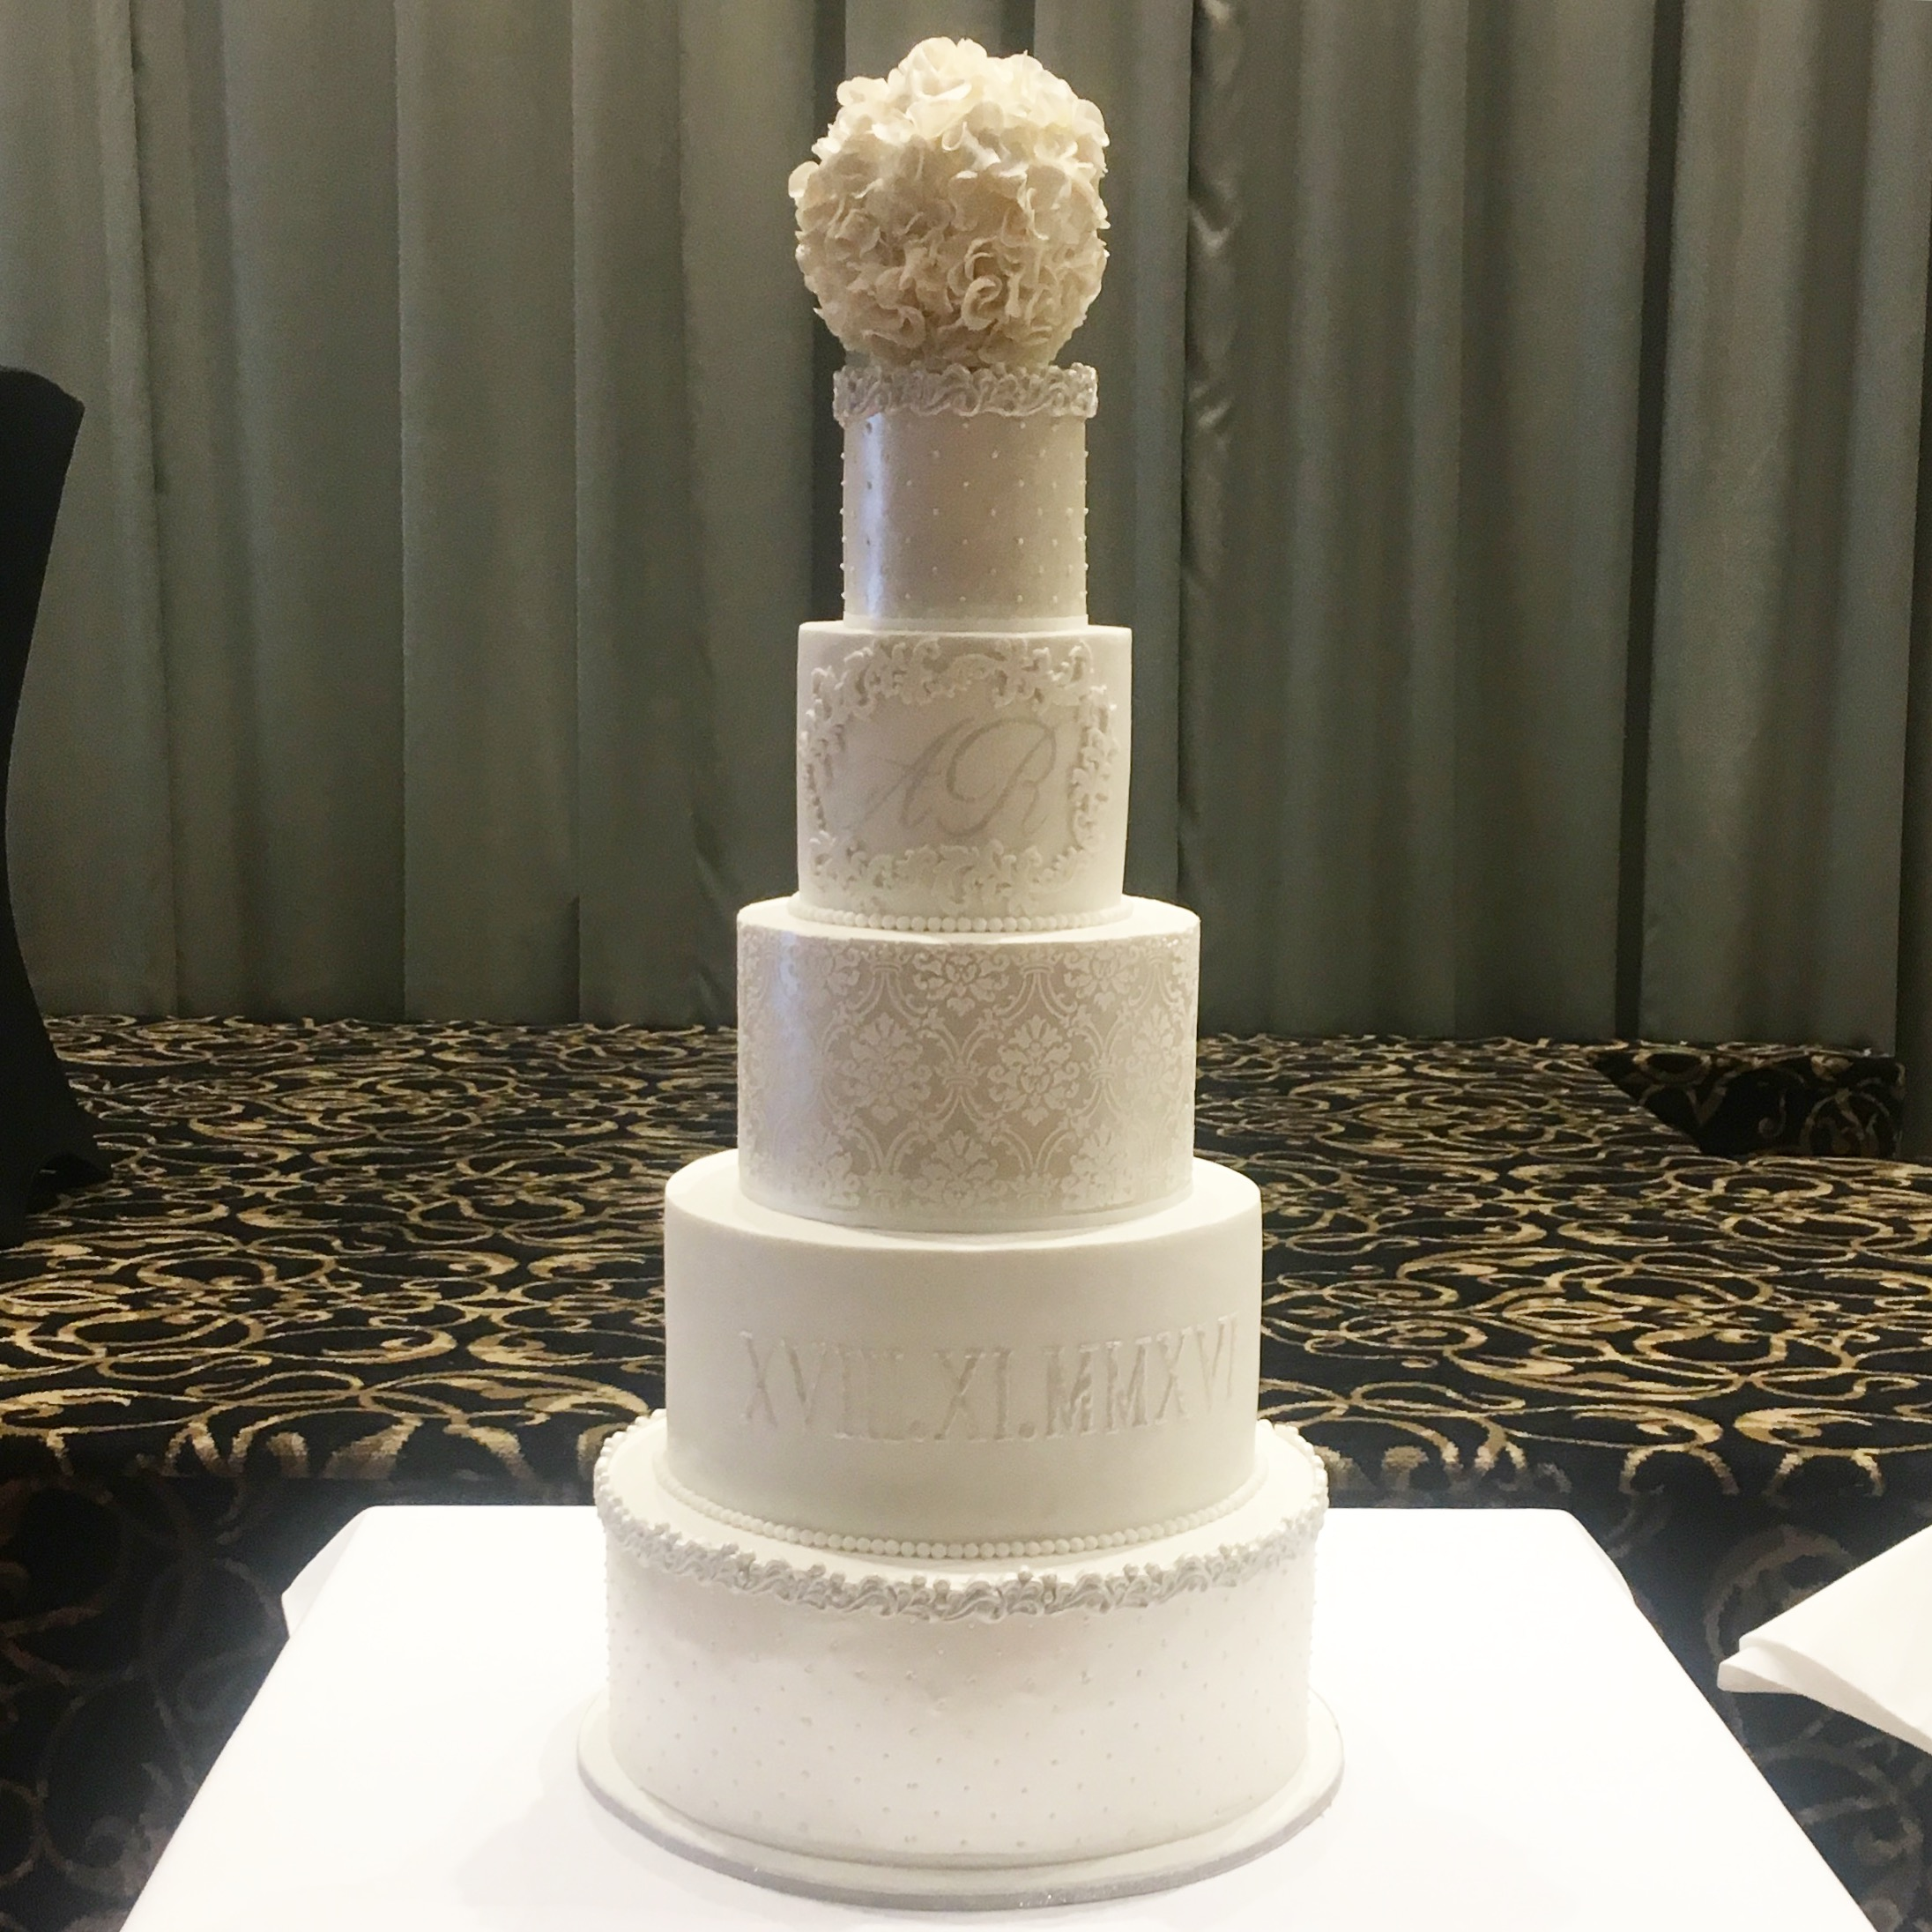 Showstopper Wedding Cake with Ruffle Ball Topper